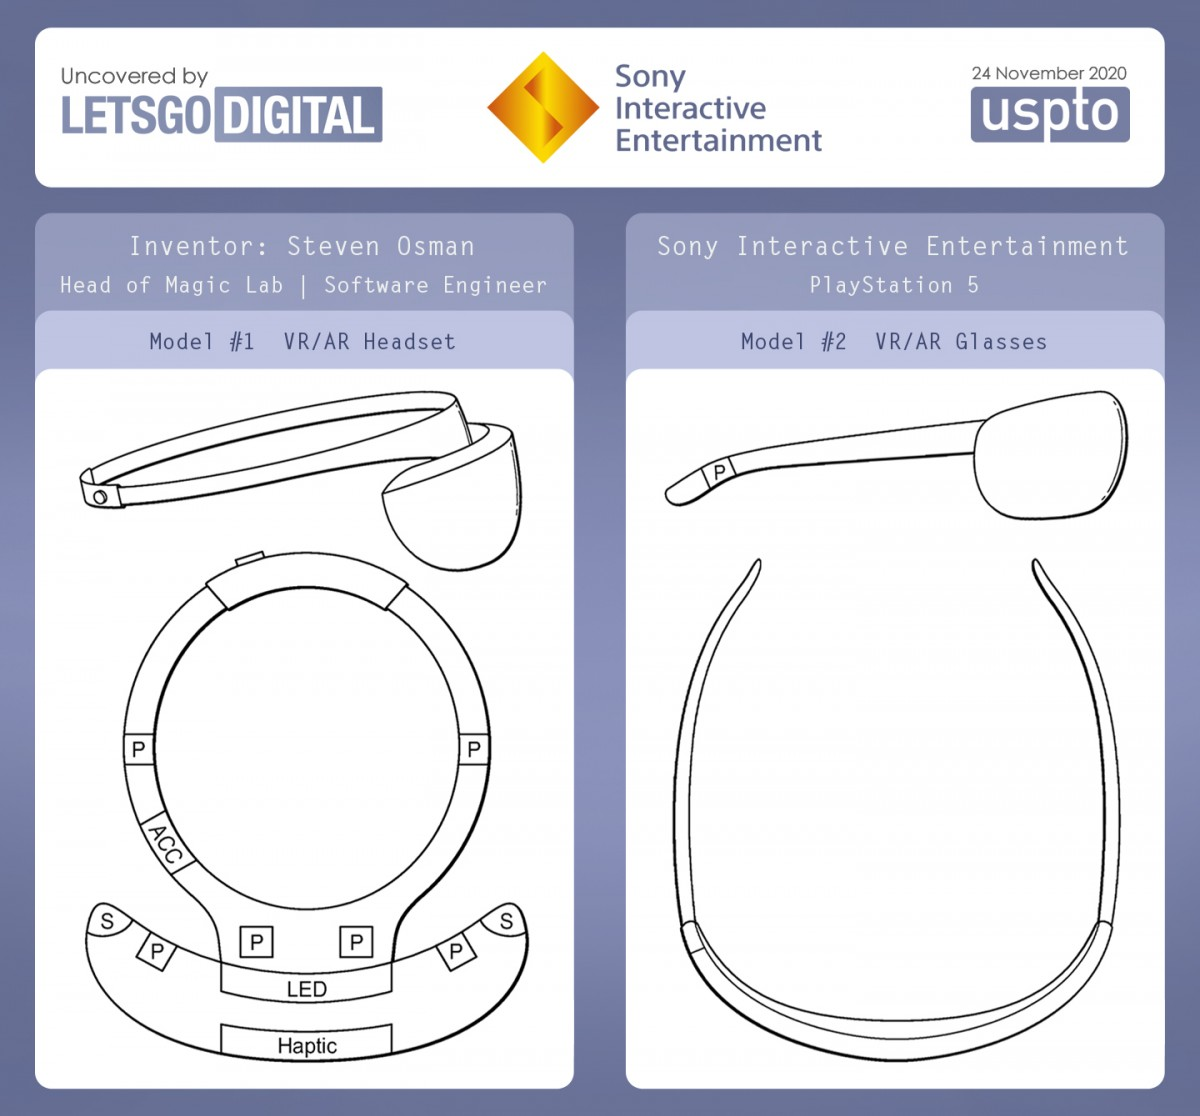 Sony patents VR and AR headsets with wear sensors and haptic feedback